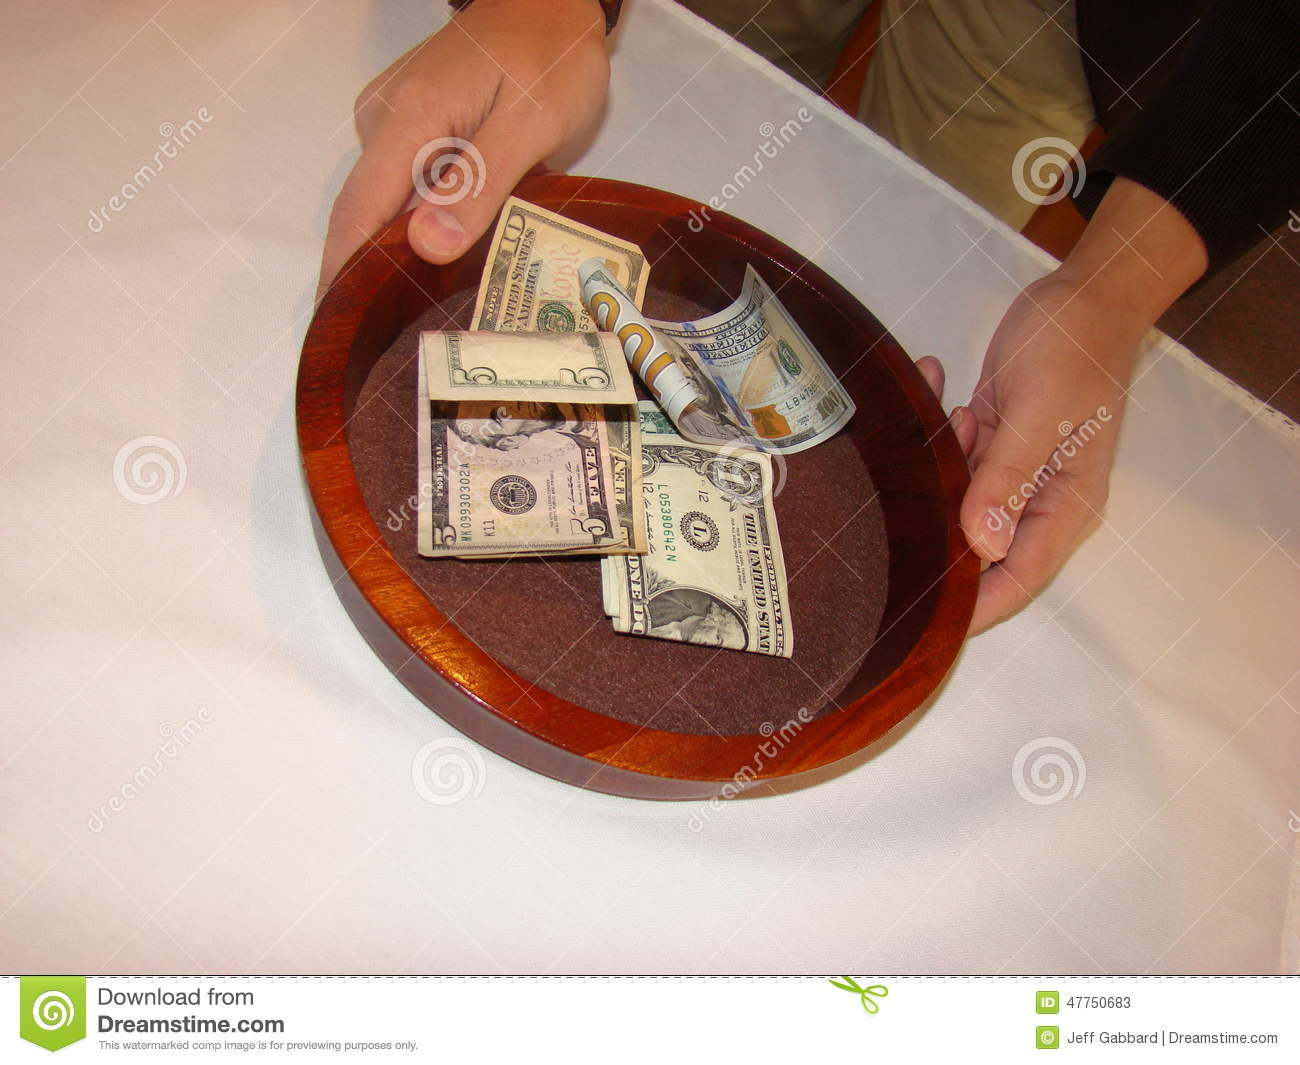 Man holding Collection Plate